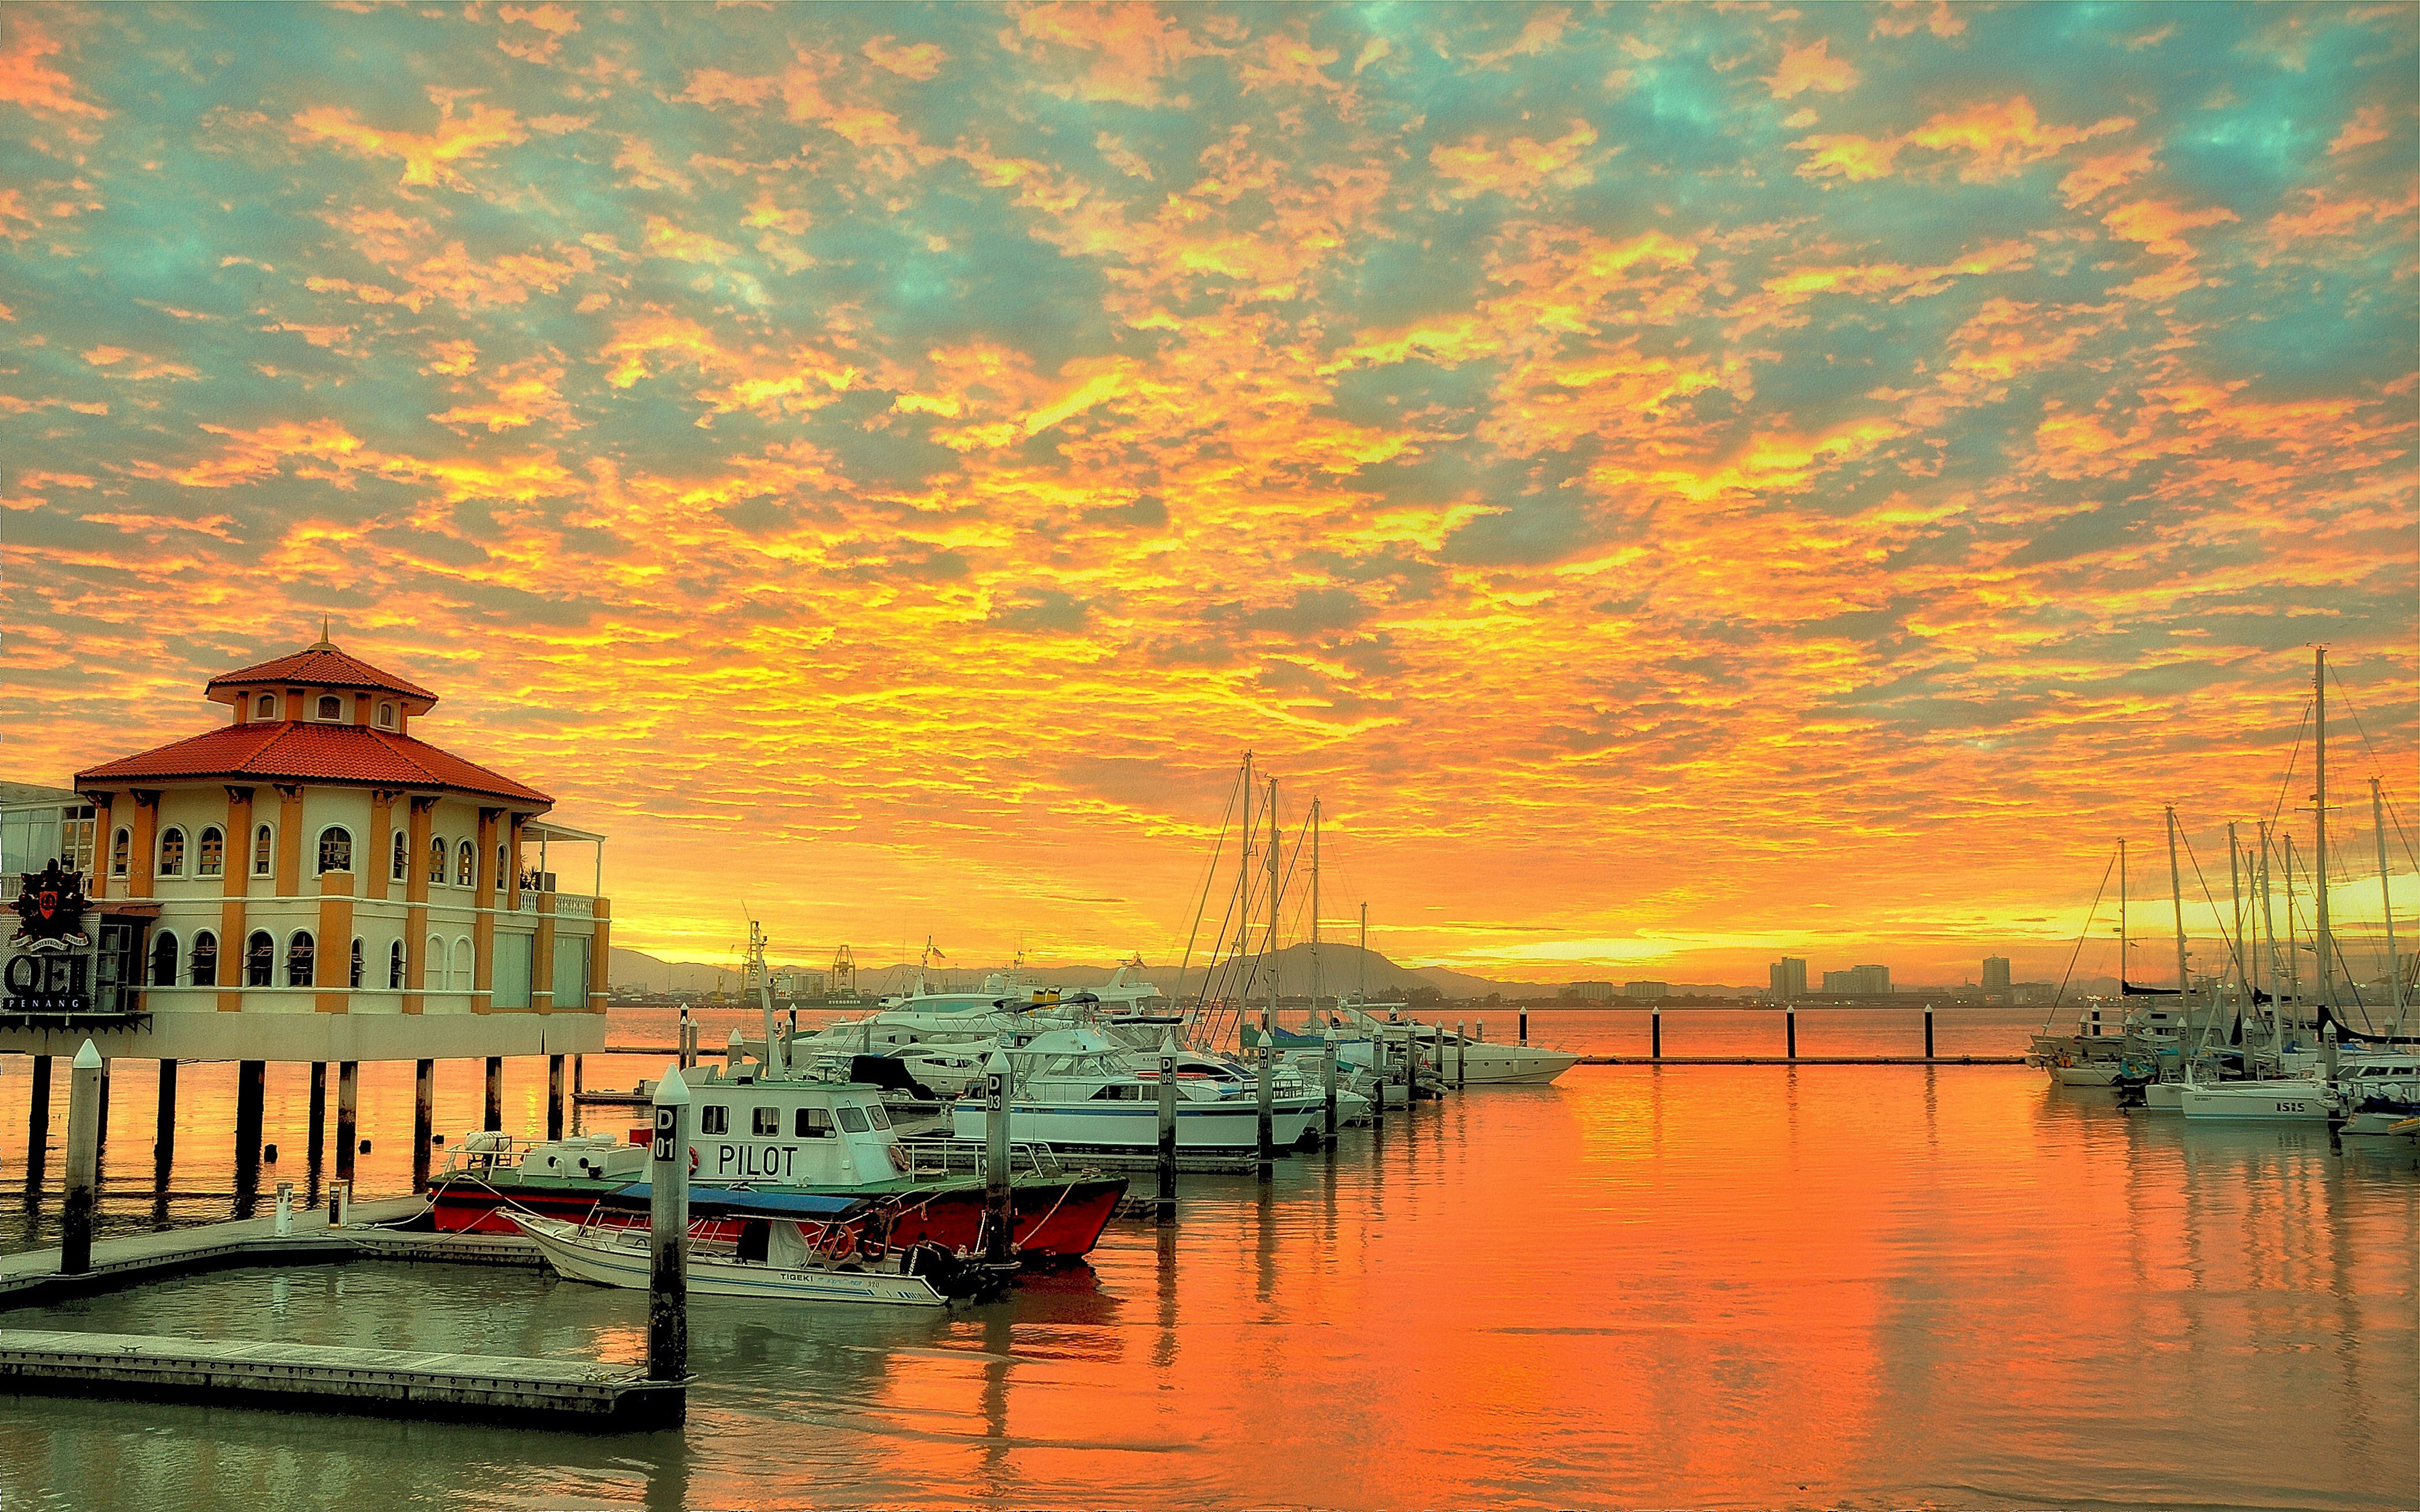 England Wallpaper Iphone 5 Sunset Red Sky With Cloud Reflection In Water Harbor For